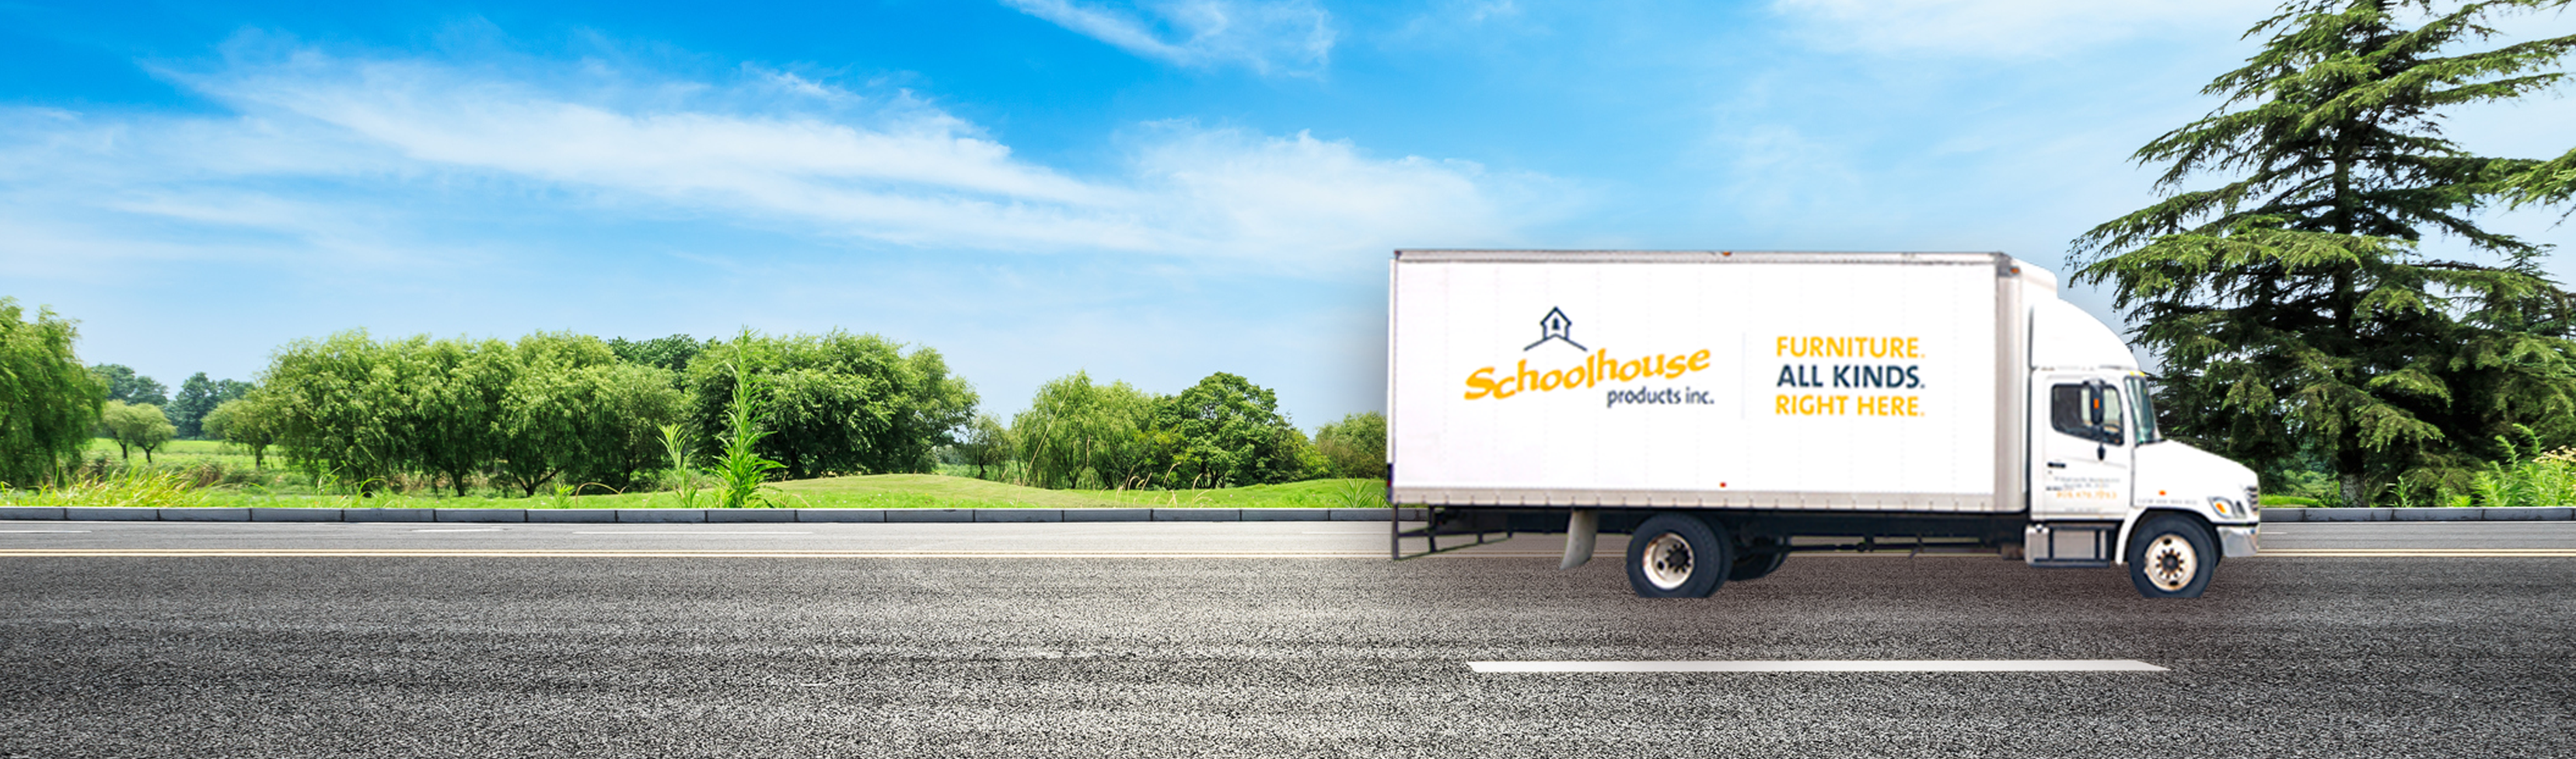 Schoolhouse Products delivery truck photoshopped onto road next to green trees